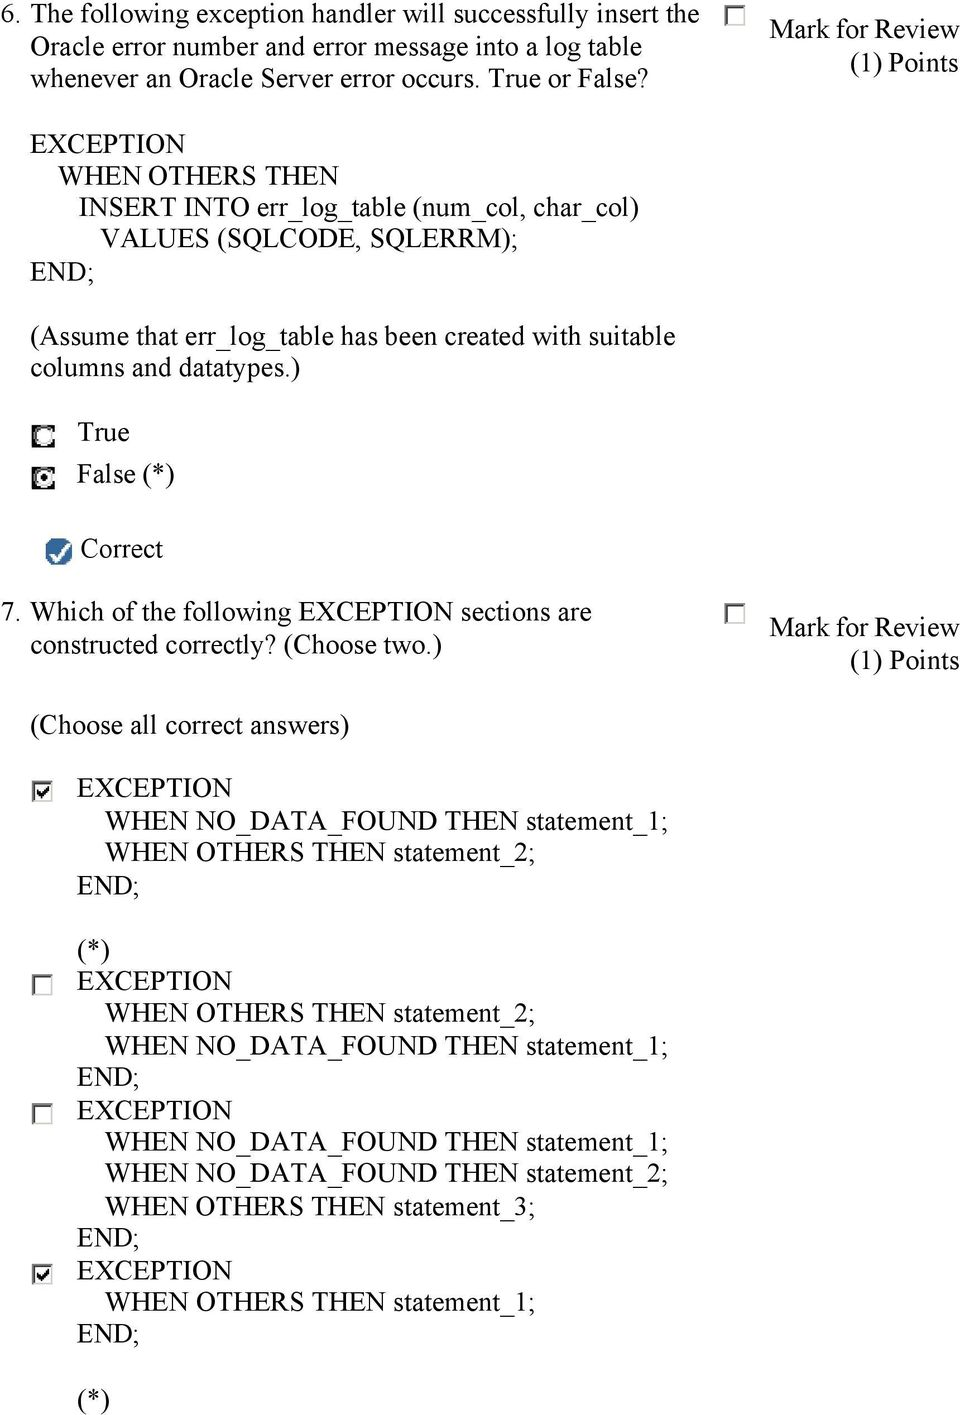 Which of the following EXCEPTION sections are constructed correctly? (Choose two.